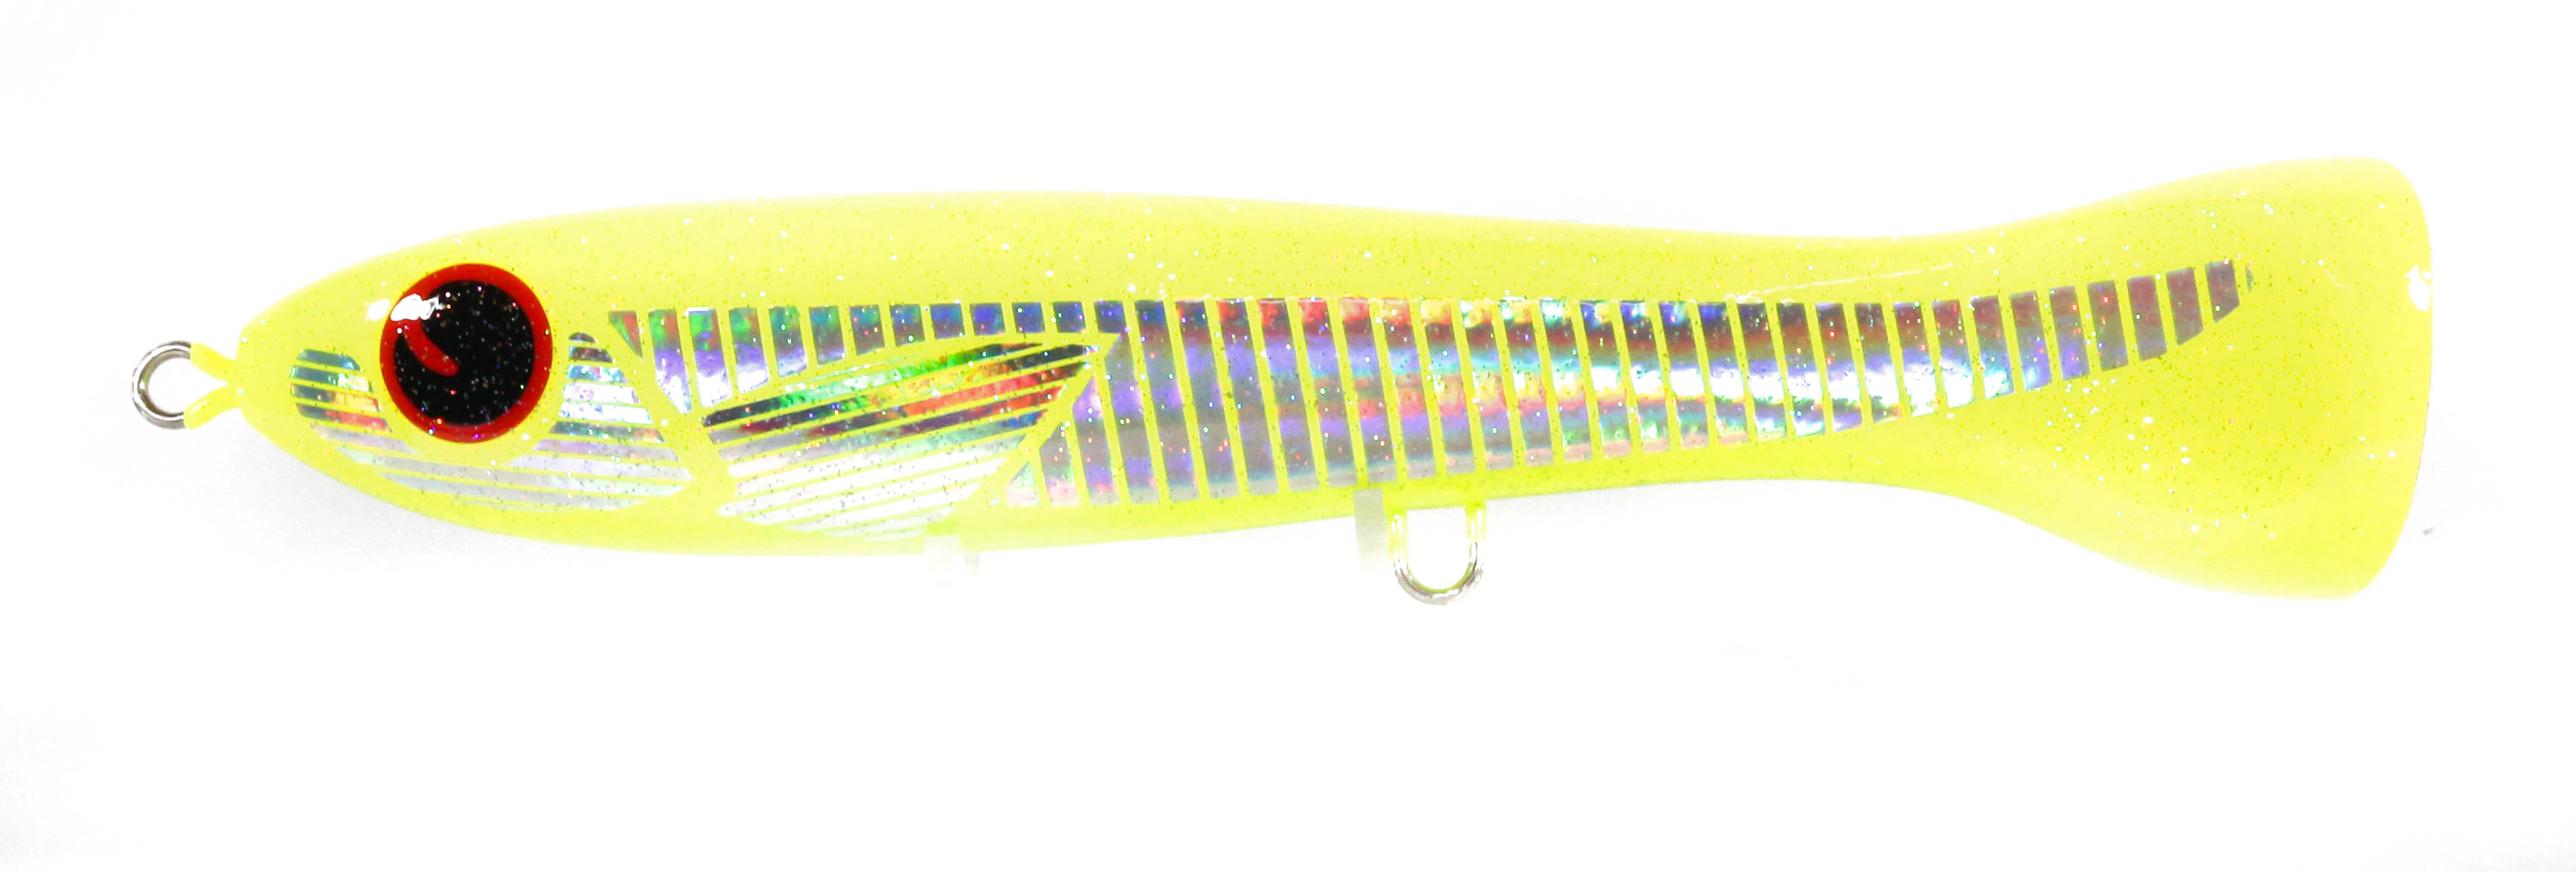 FCL Labo Popper Ebi Pop EXT 120 Floating Lure 125 grams ACH (0841)